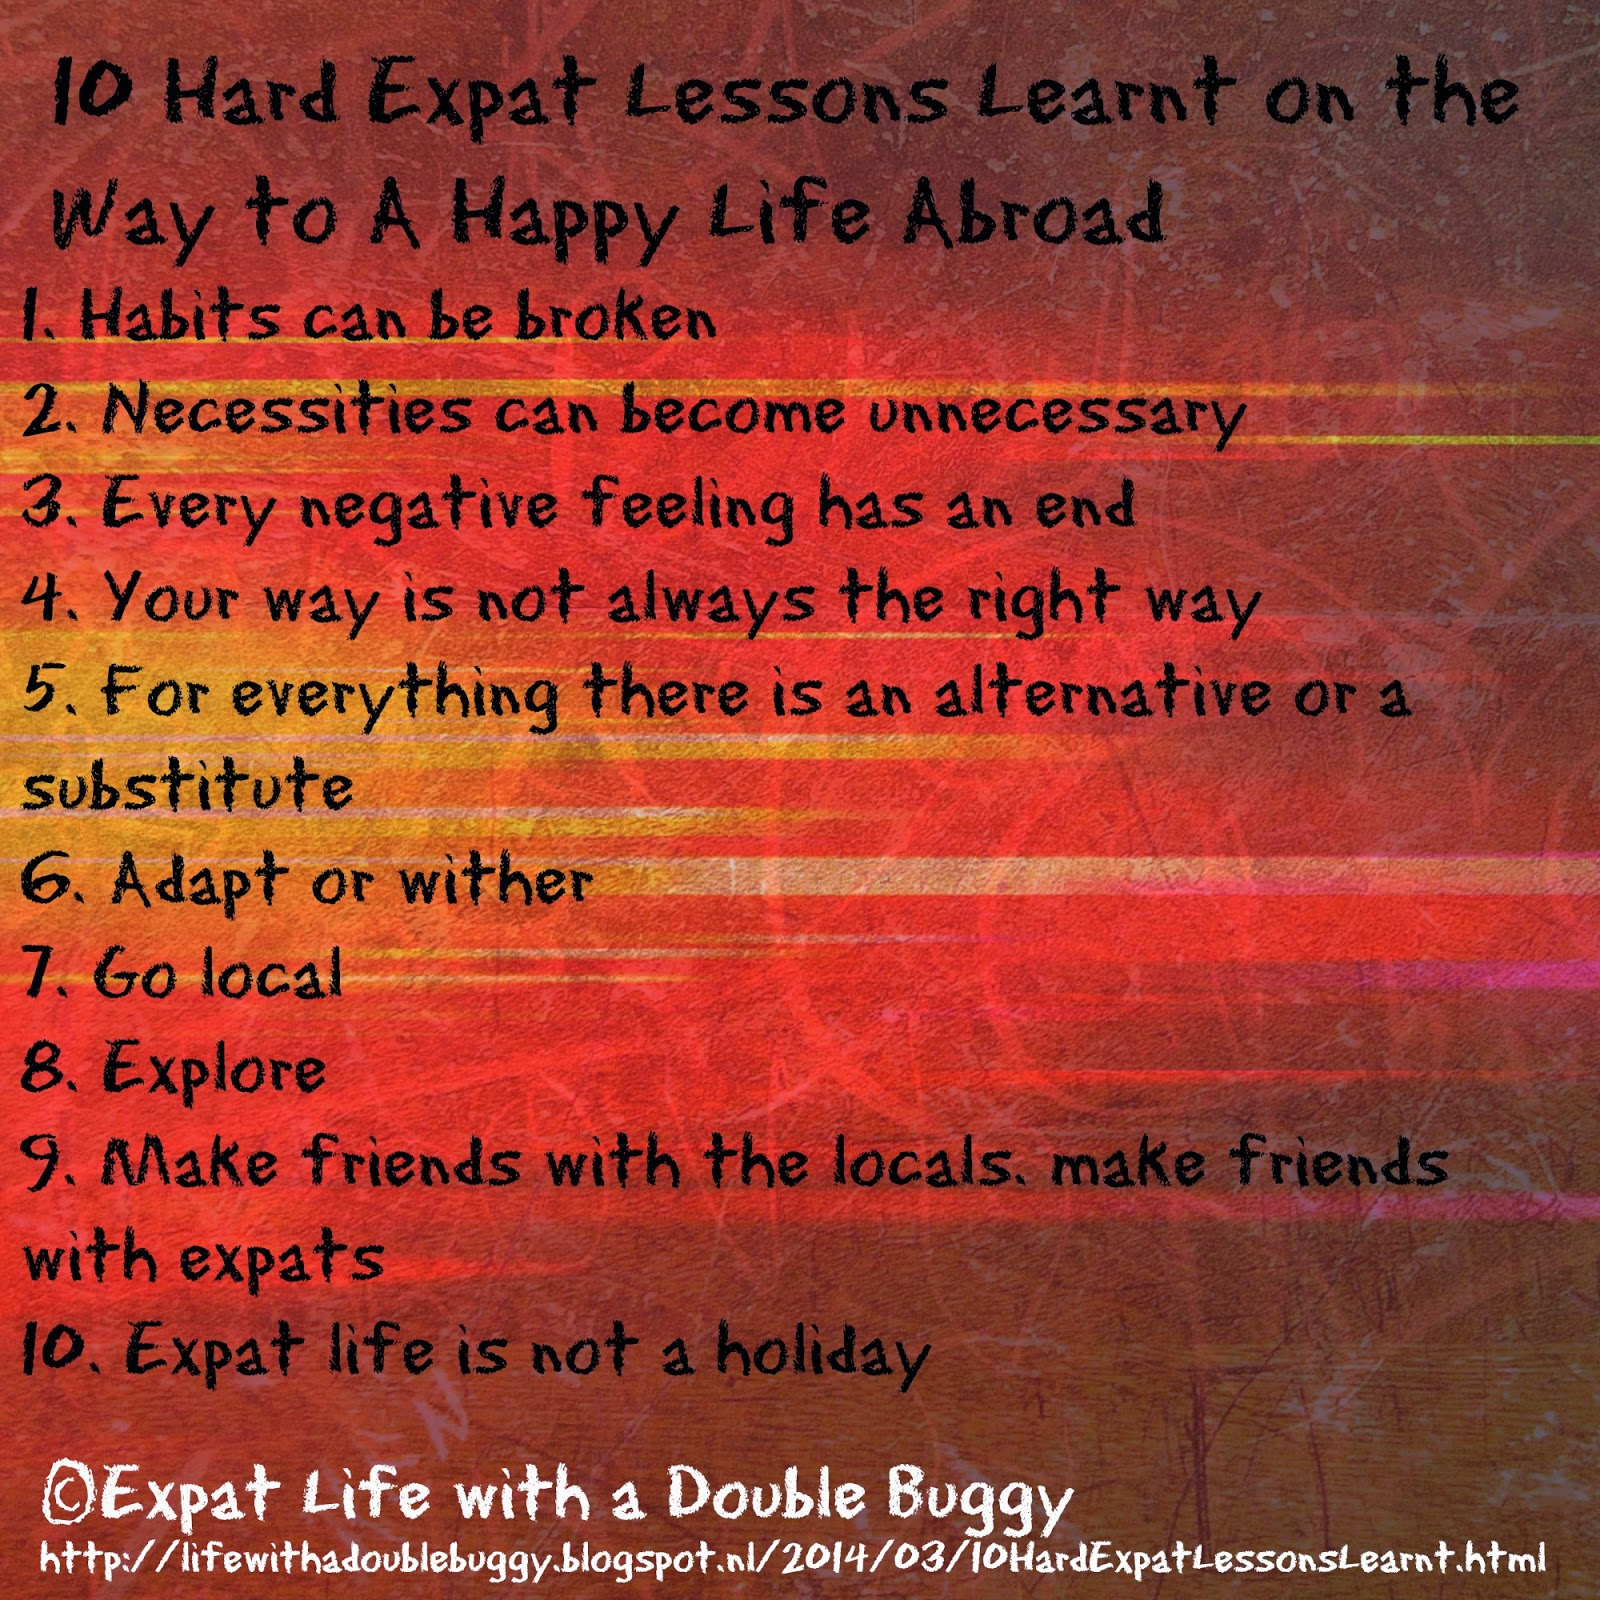 10 Hard Expat Lessons Learnt on the Way to A Happy Life Abroad by Amanda van Mulligen at Expat Life with a Double Buggy